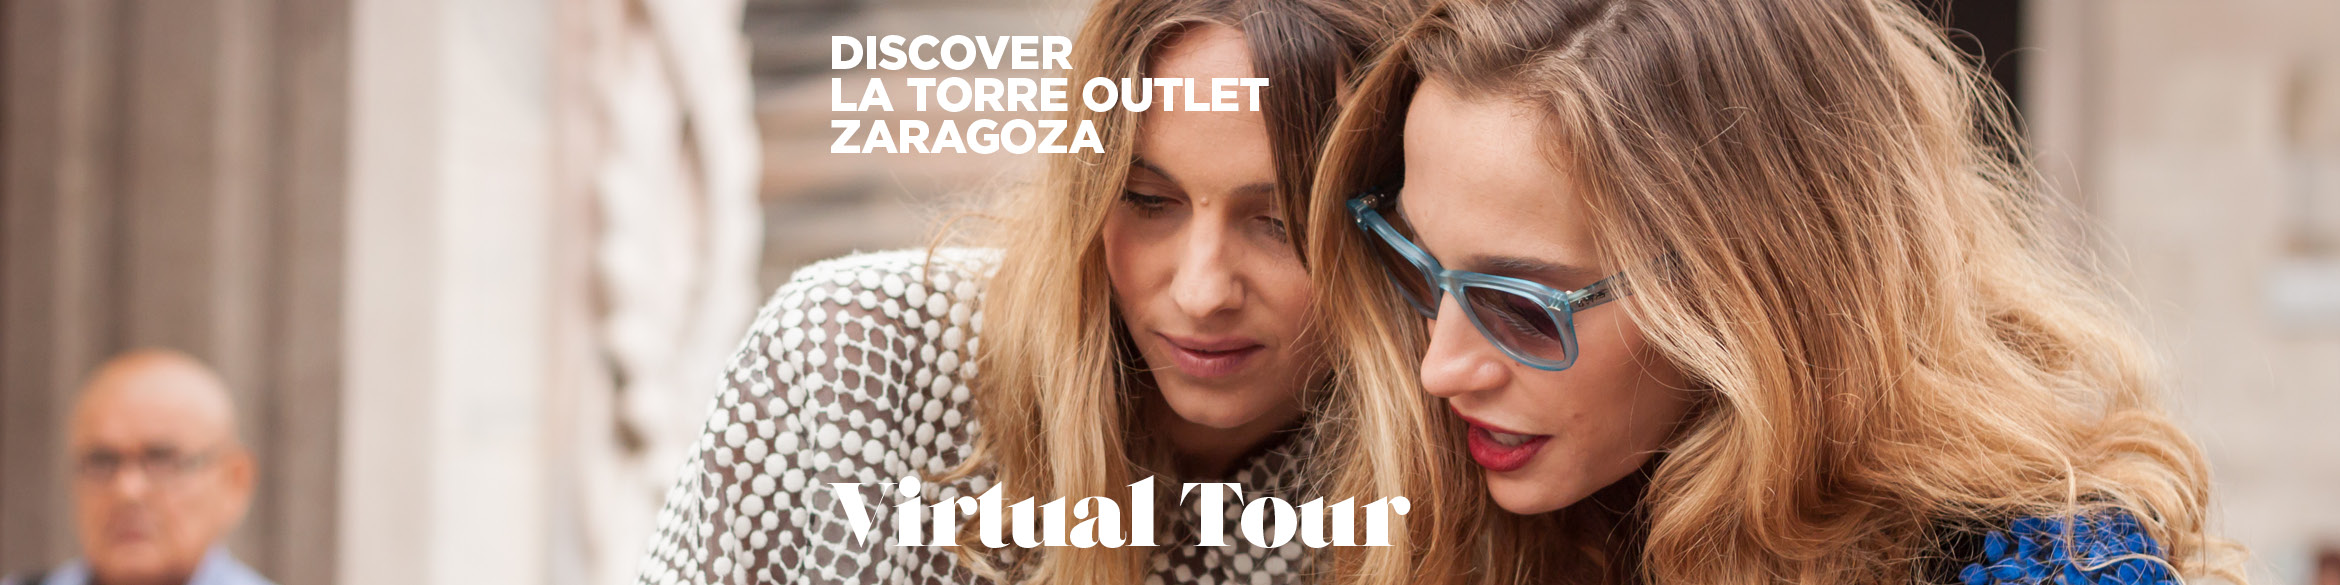 La Torre Outlet Zaragoza reveals its brands in a Virtual Tour with prizes